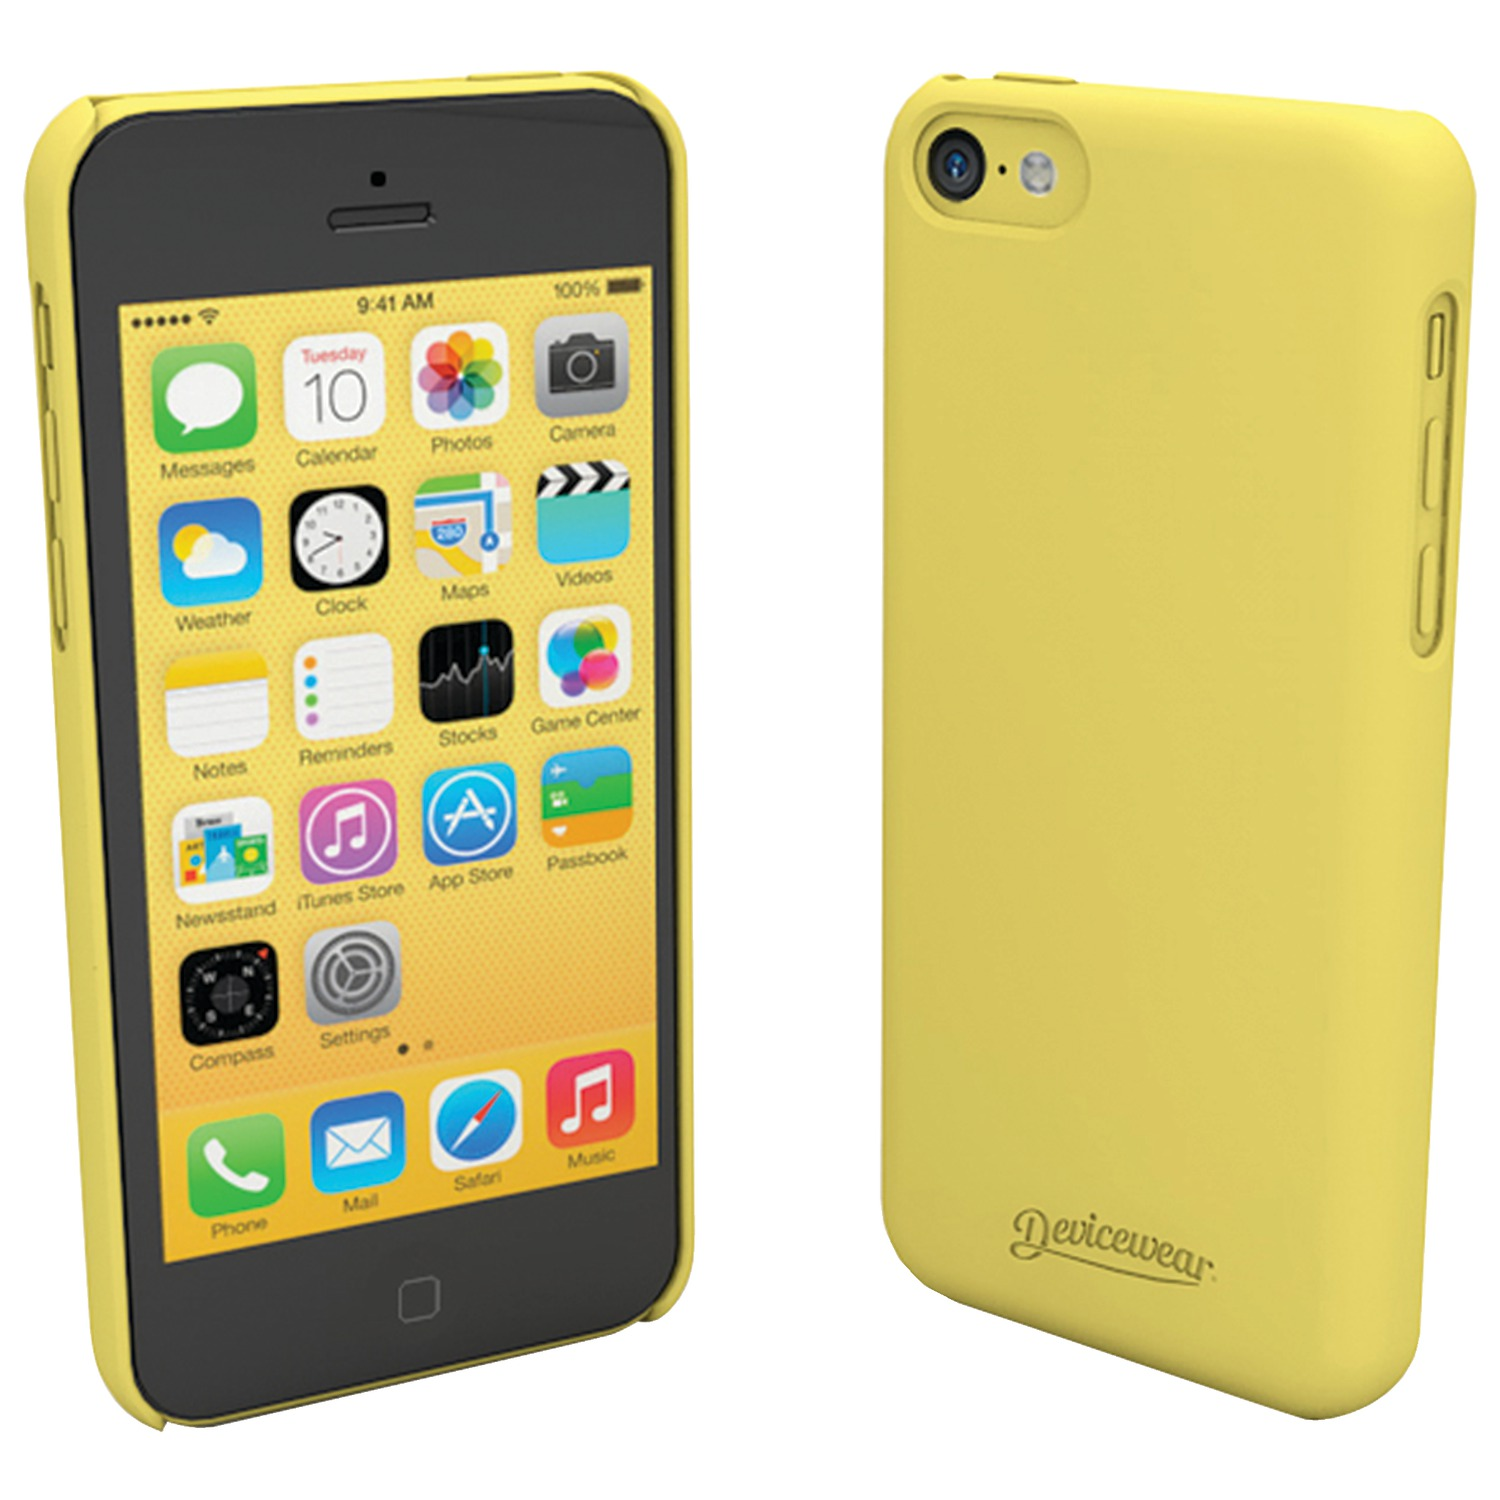 iphone 5c yellow devicewear met iph5c yel iphone r 5c metro tm 2424